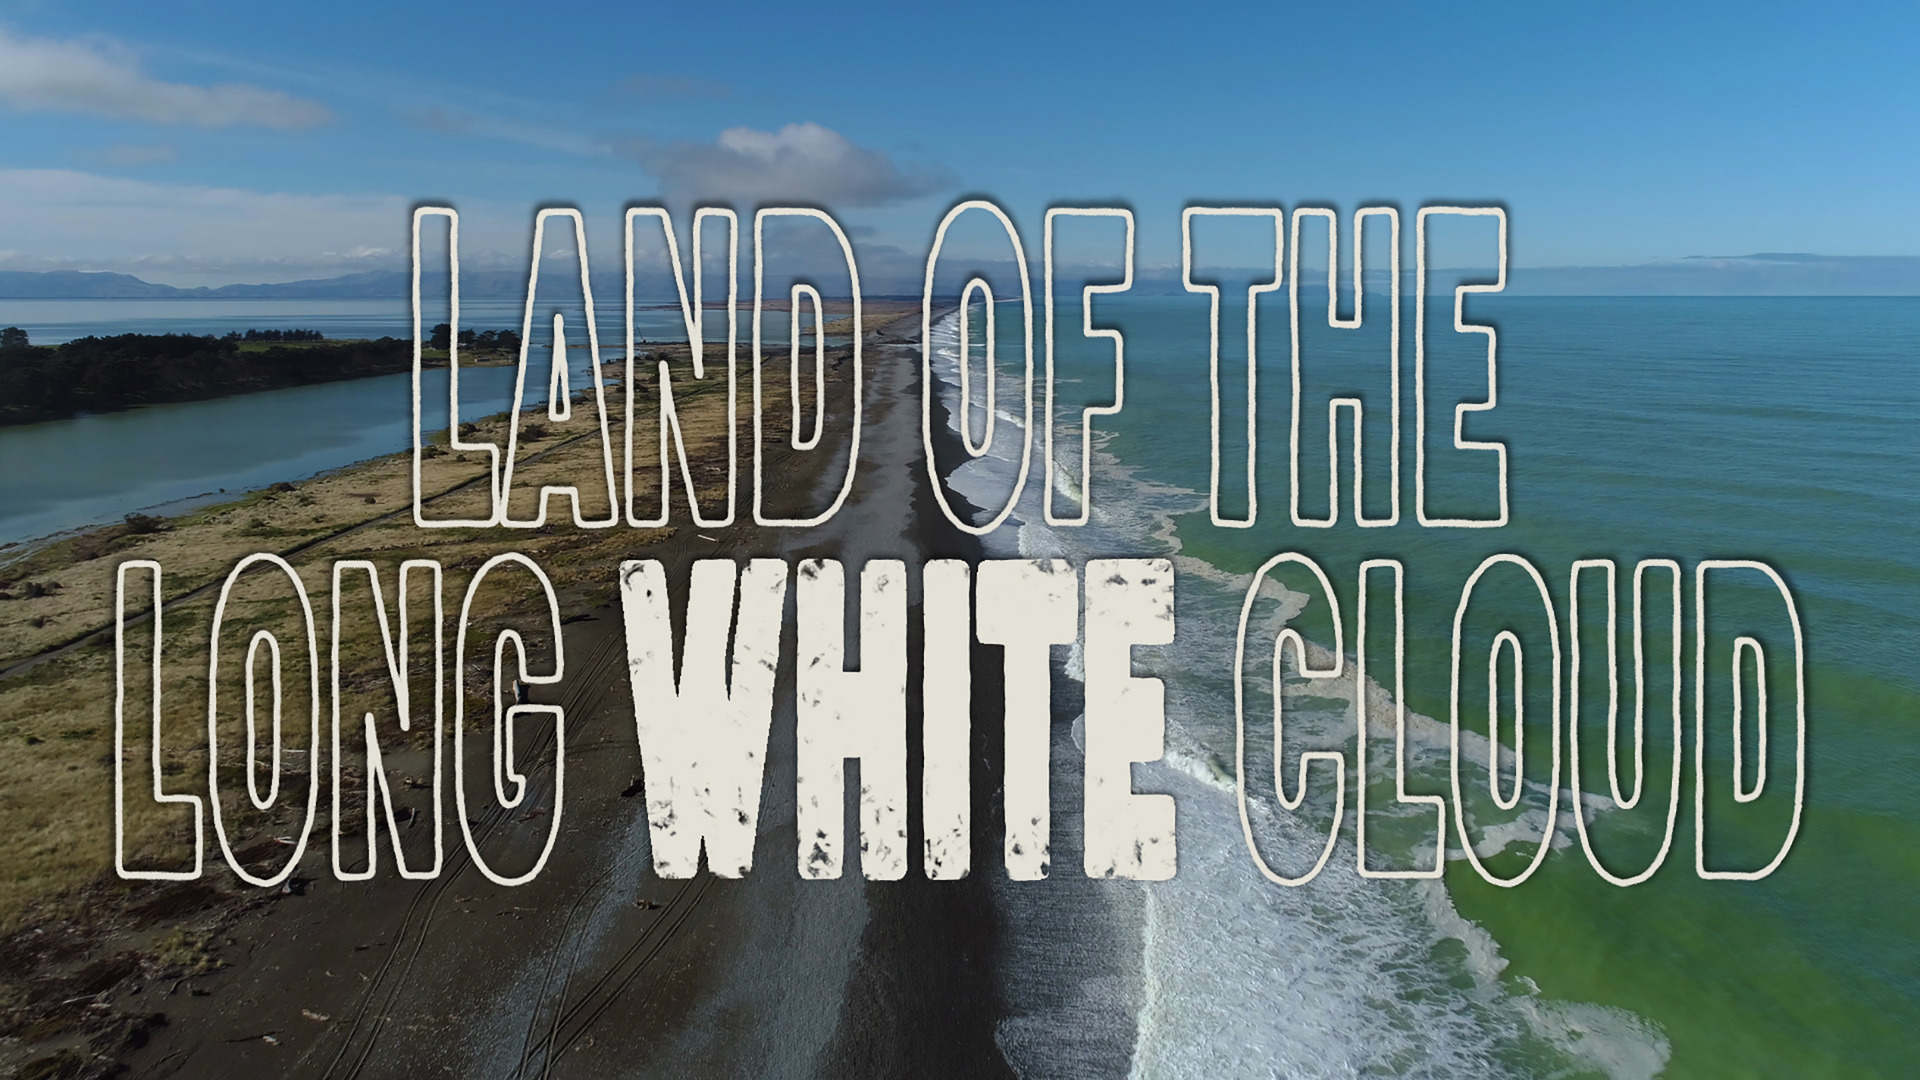 Watch now: Land of the Long White Cloud - 'We need to talk about racism'